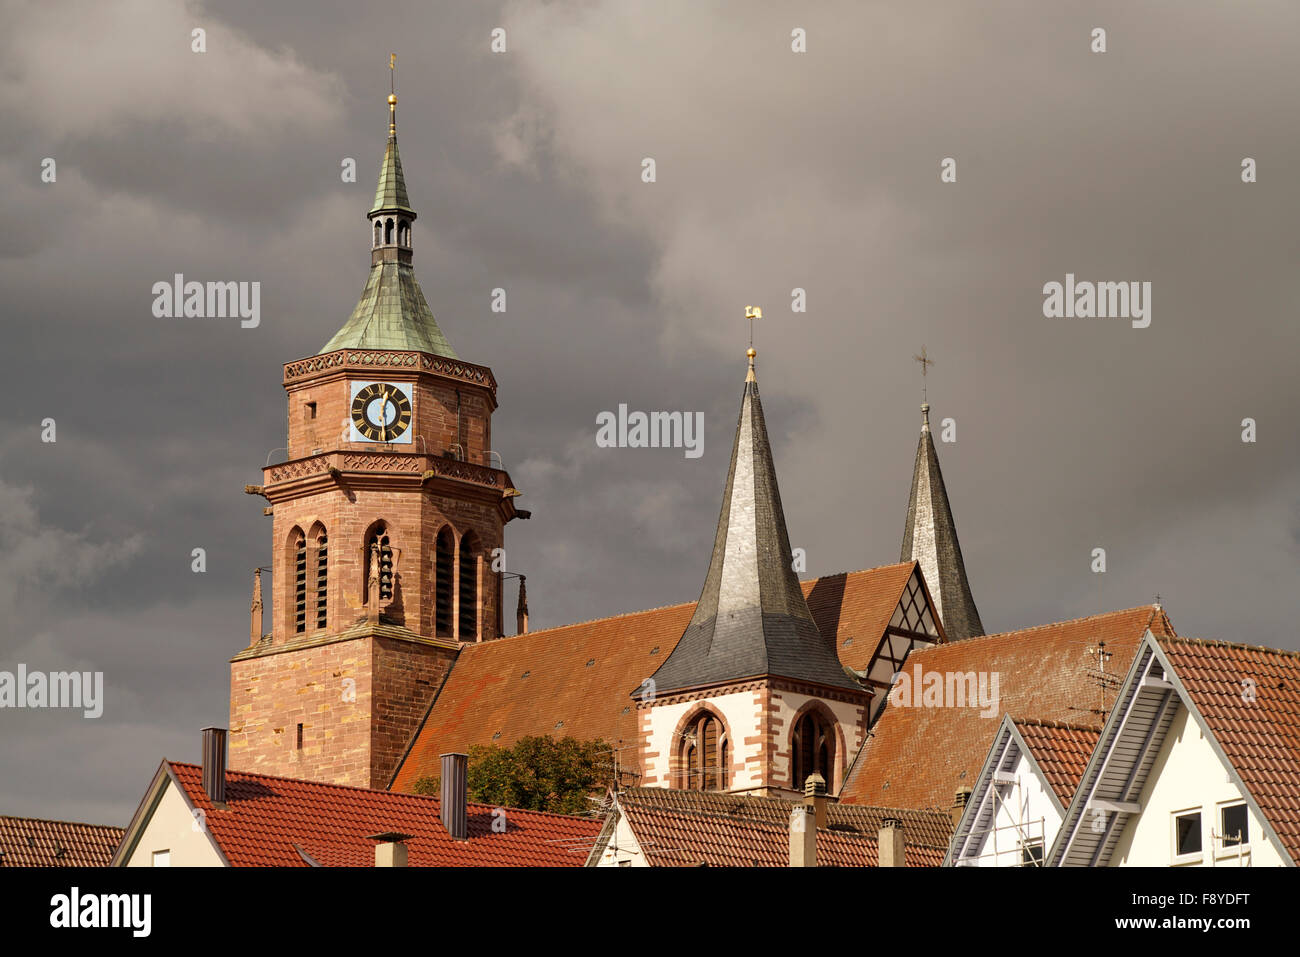 City Church St. Peter and Paul in Weil der Stadt, Boeblingen, Baden-Wuerttemberg, Germany - Stock Image